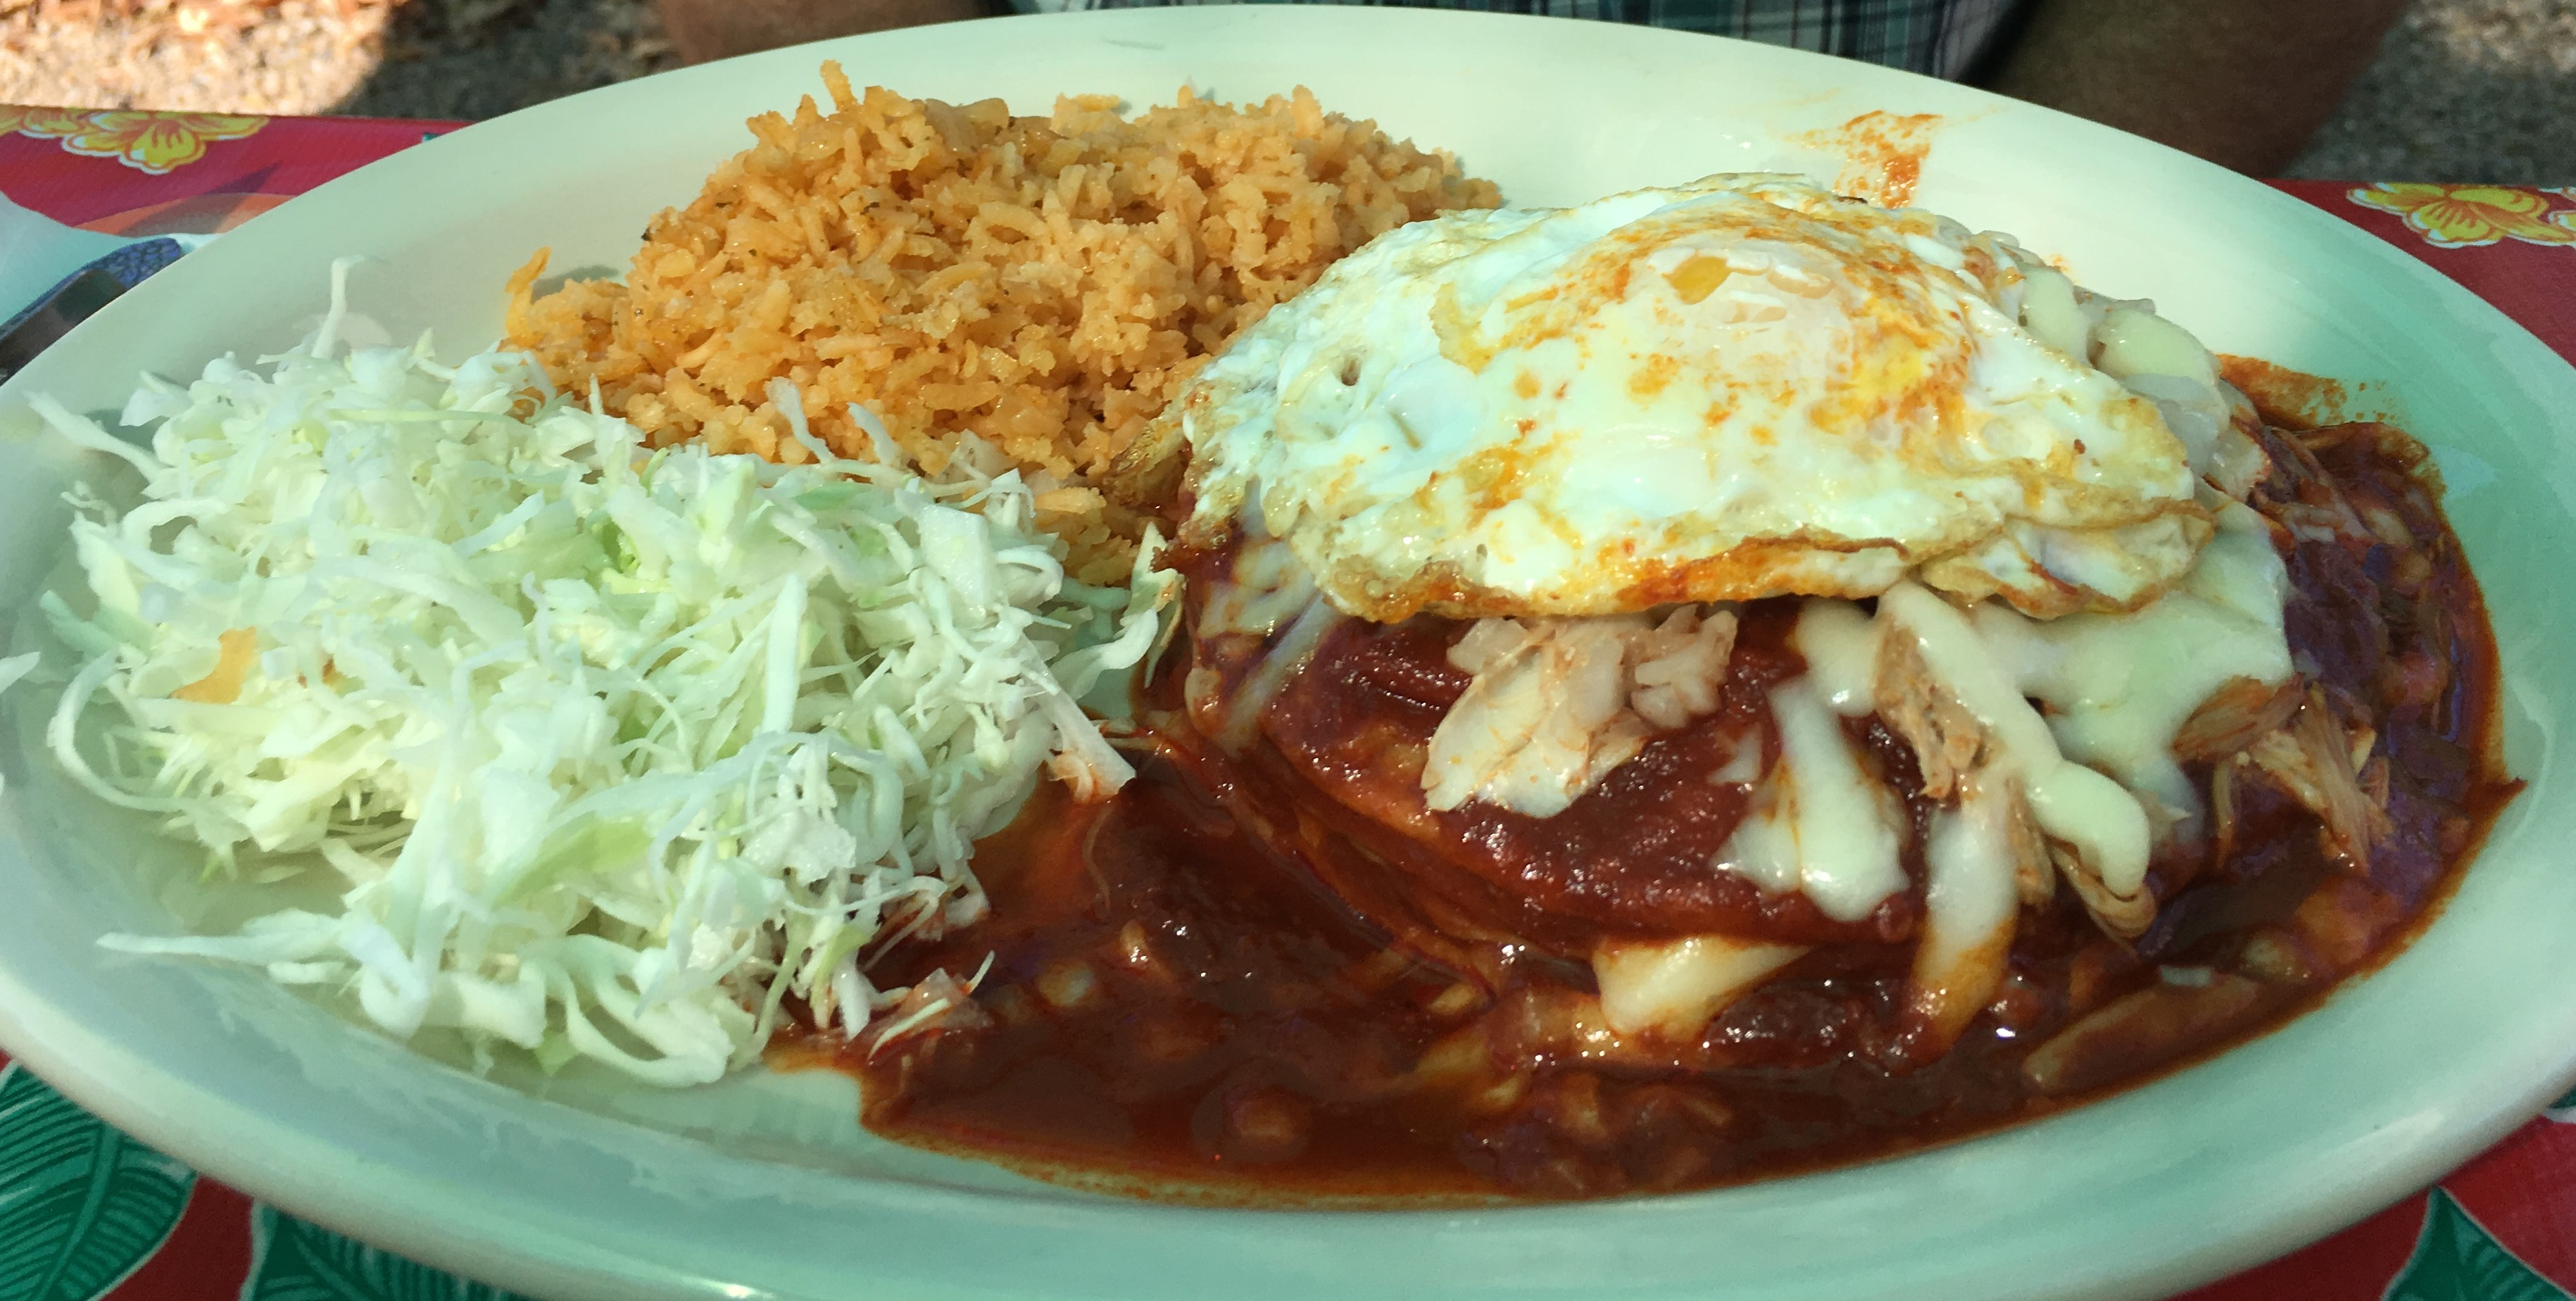 Chicken enchiladas with red sauce and an egg on top, with rice and cabbage.